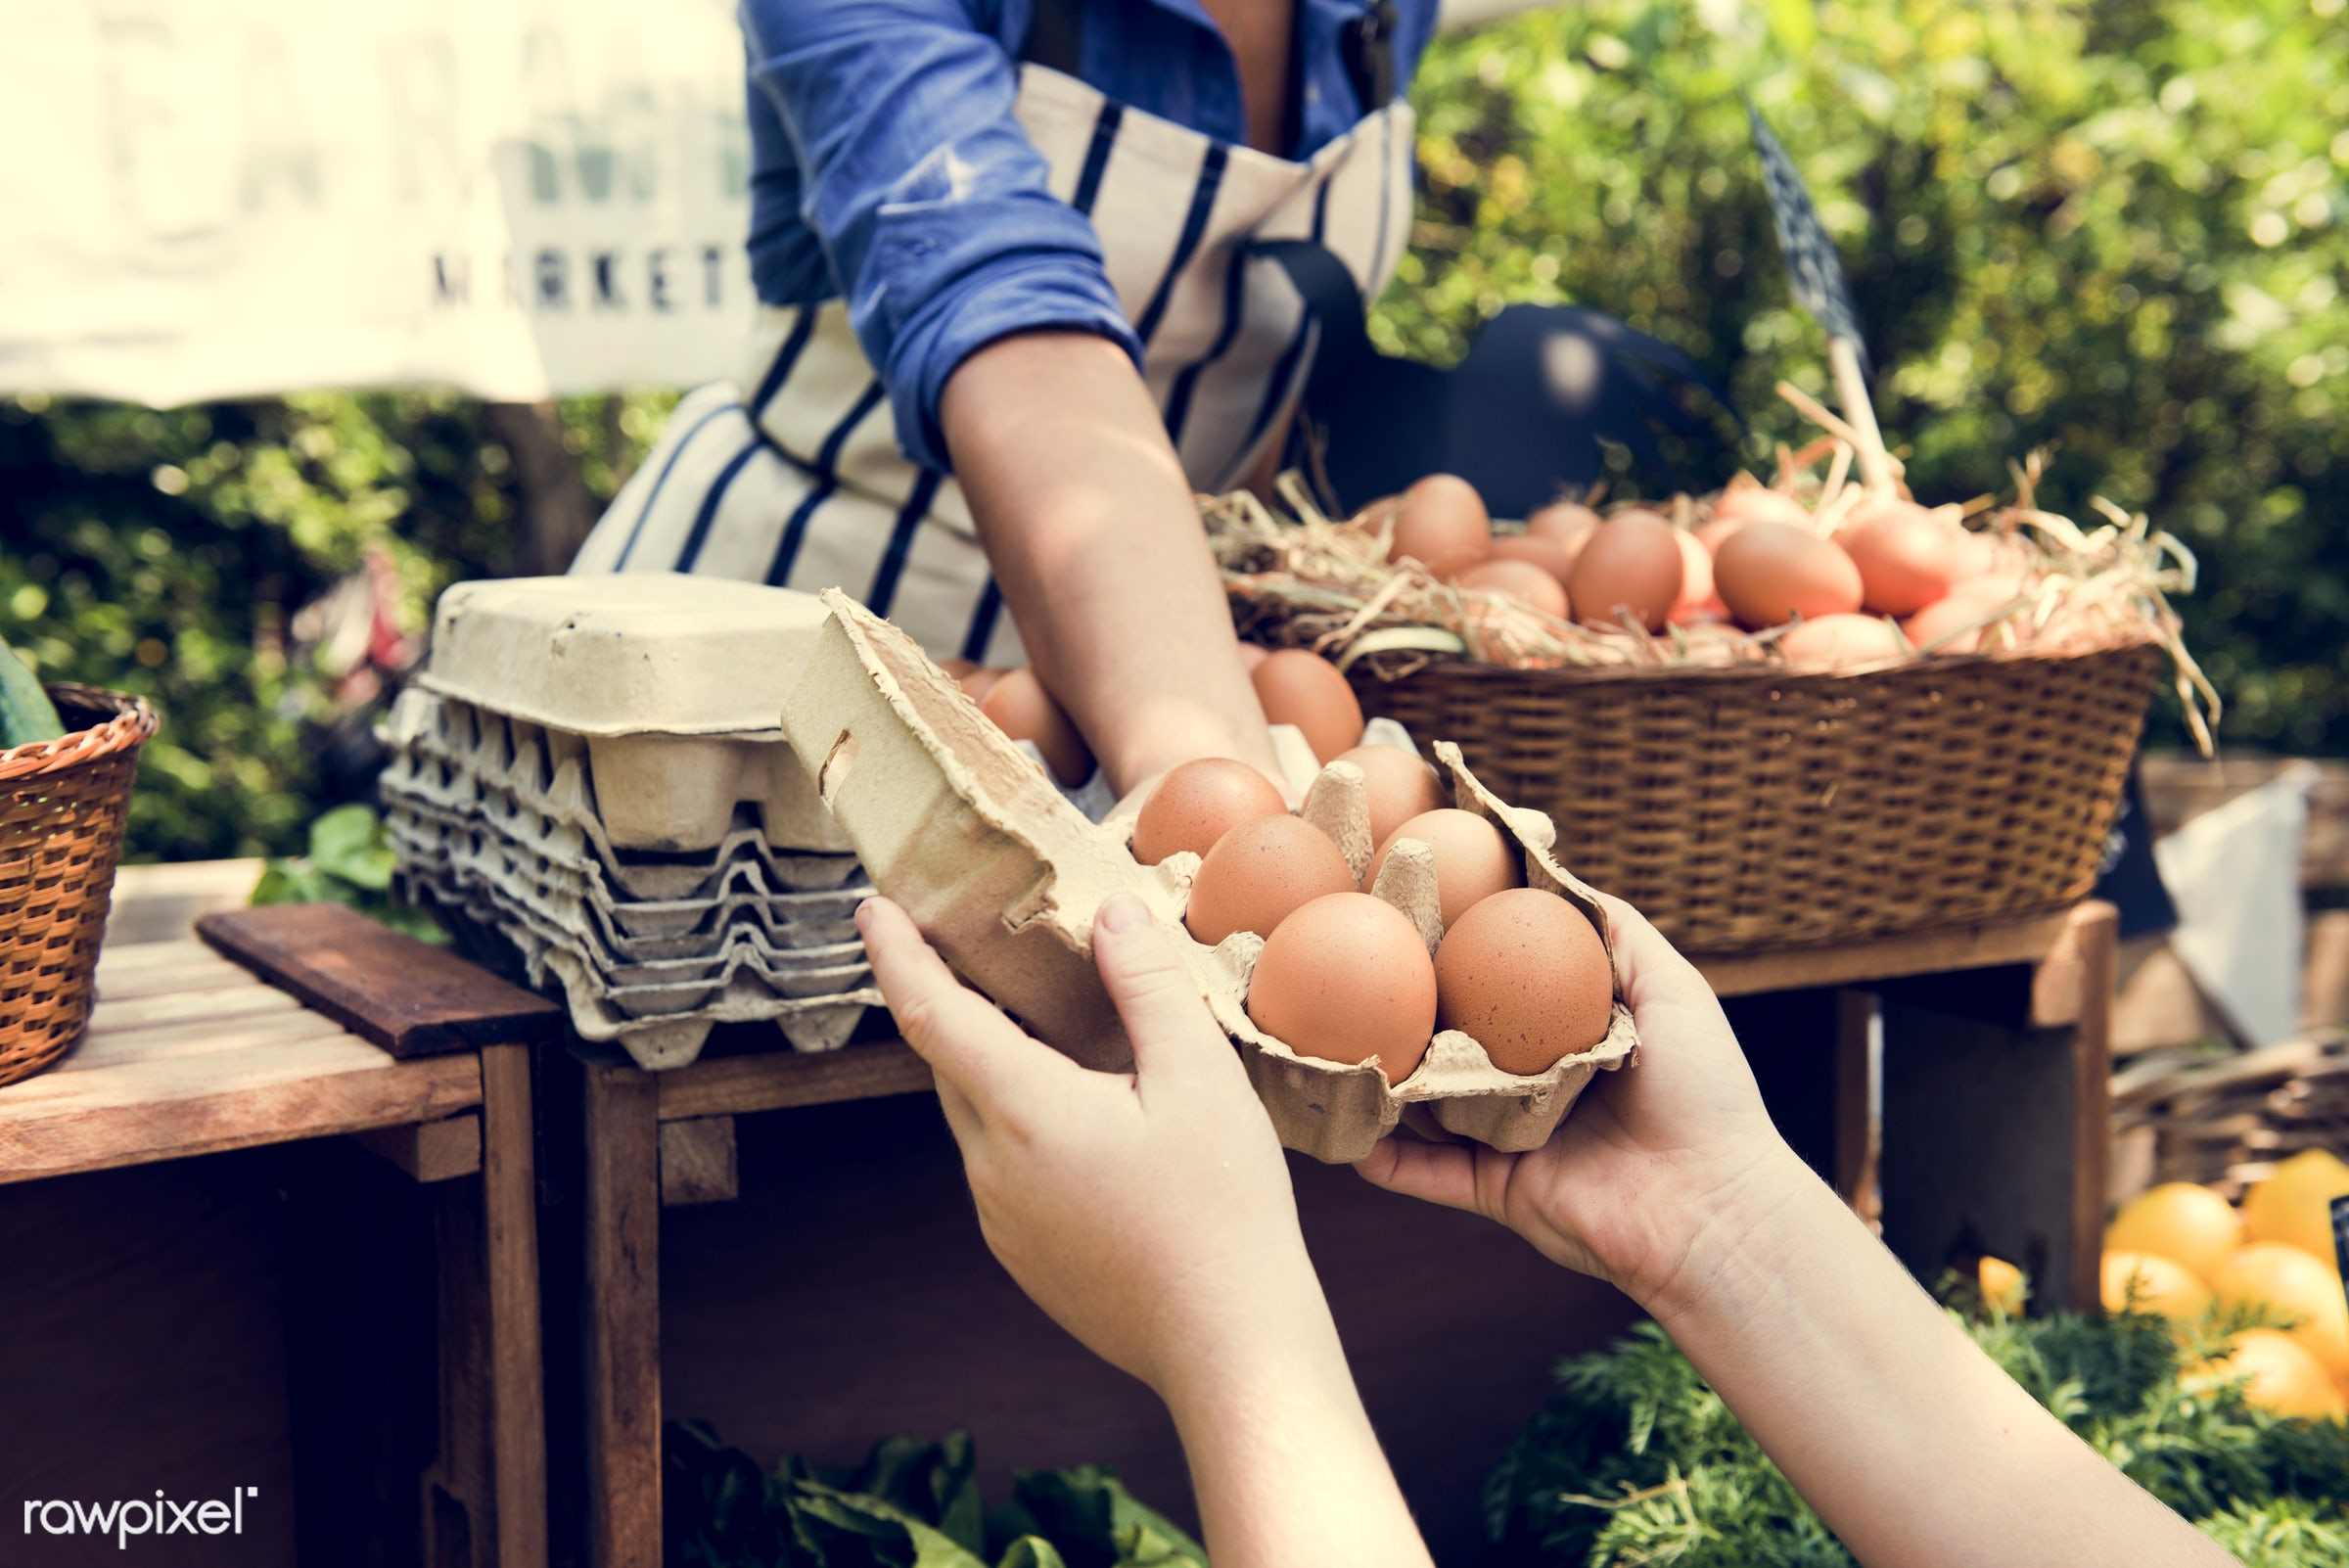 shop, uncooked, cuisine, poultry, round, rooster, house, homemade, farmer, protein, ingredient, oval, agriculturalist,...